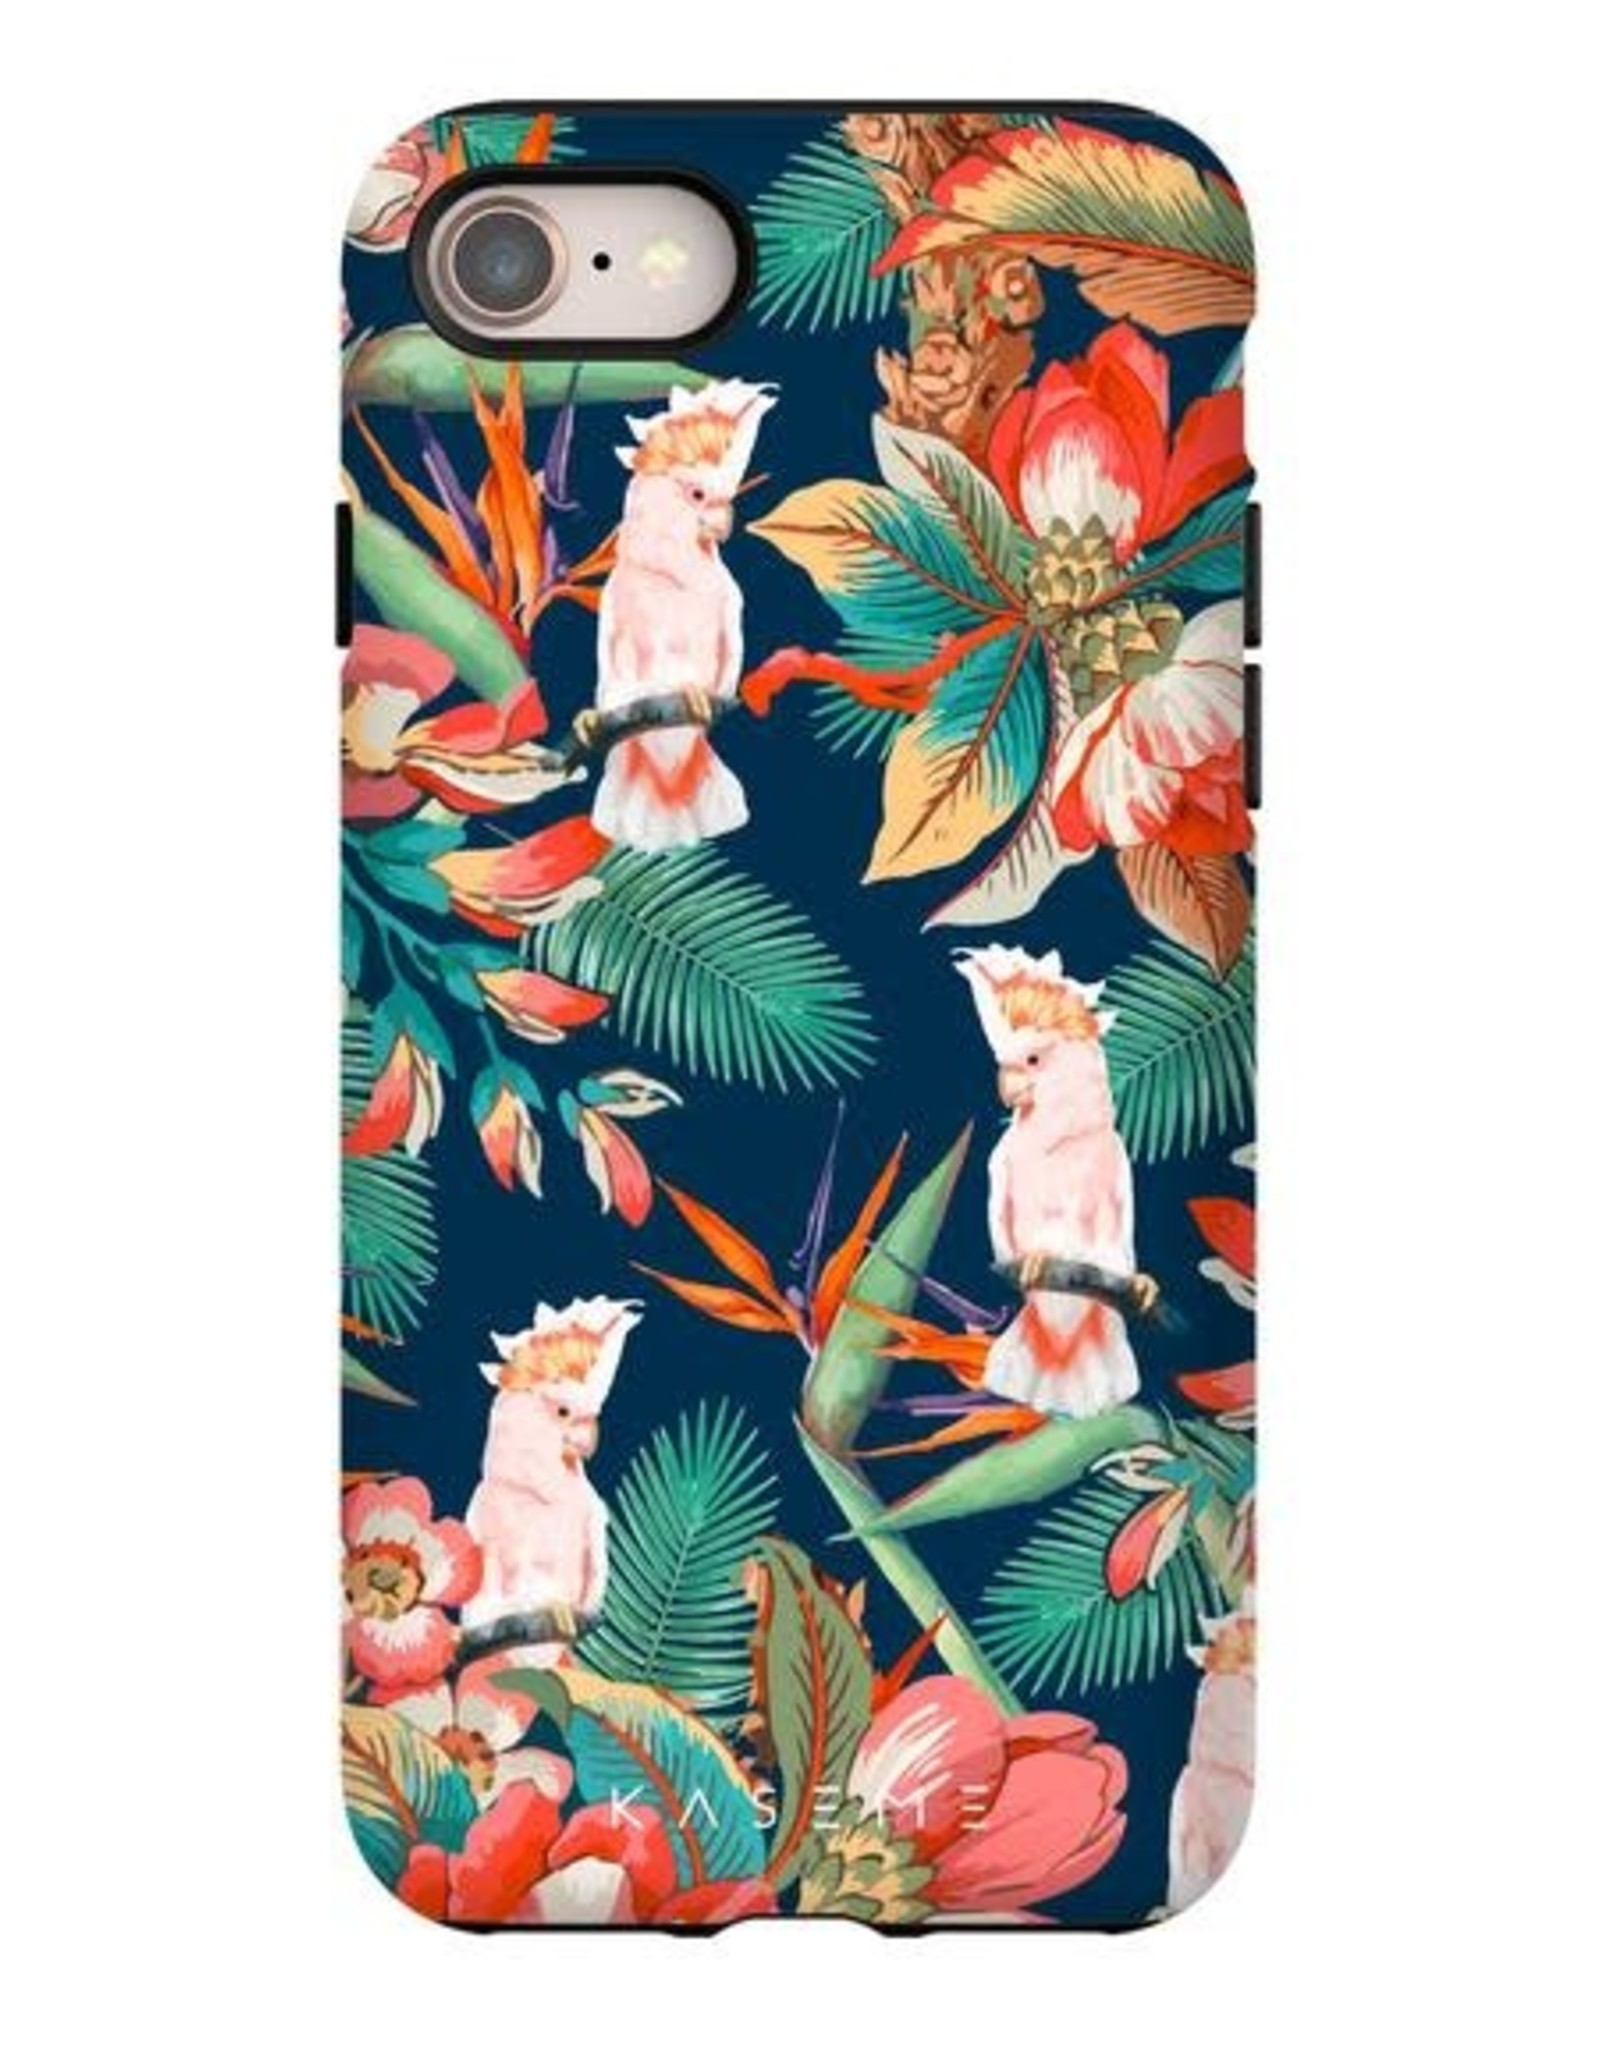 Kaseme Kaseme - etui cellulaire  iPhone cockatoo